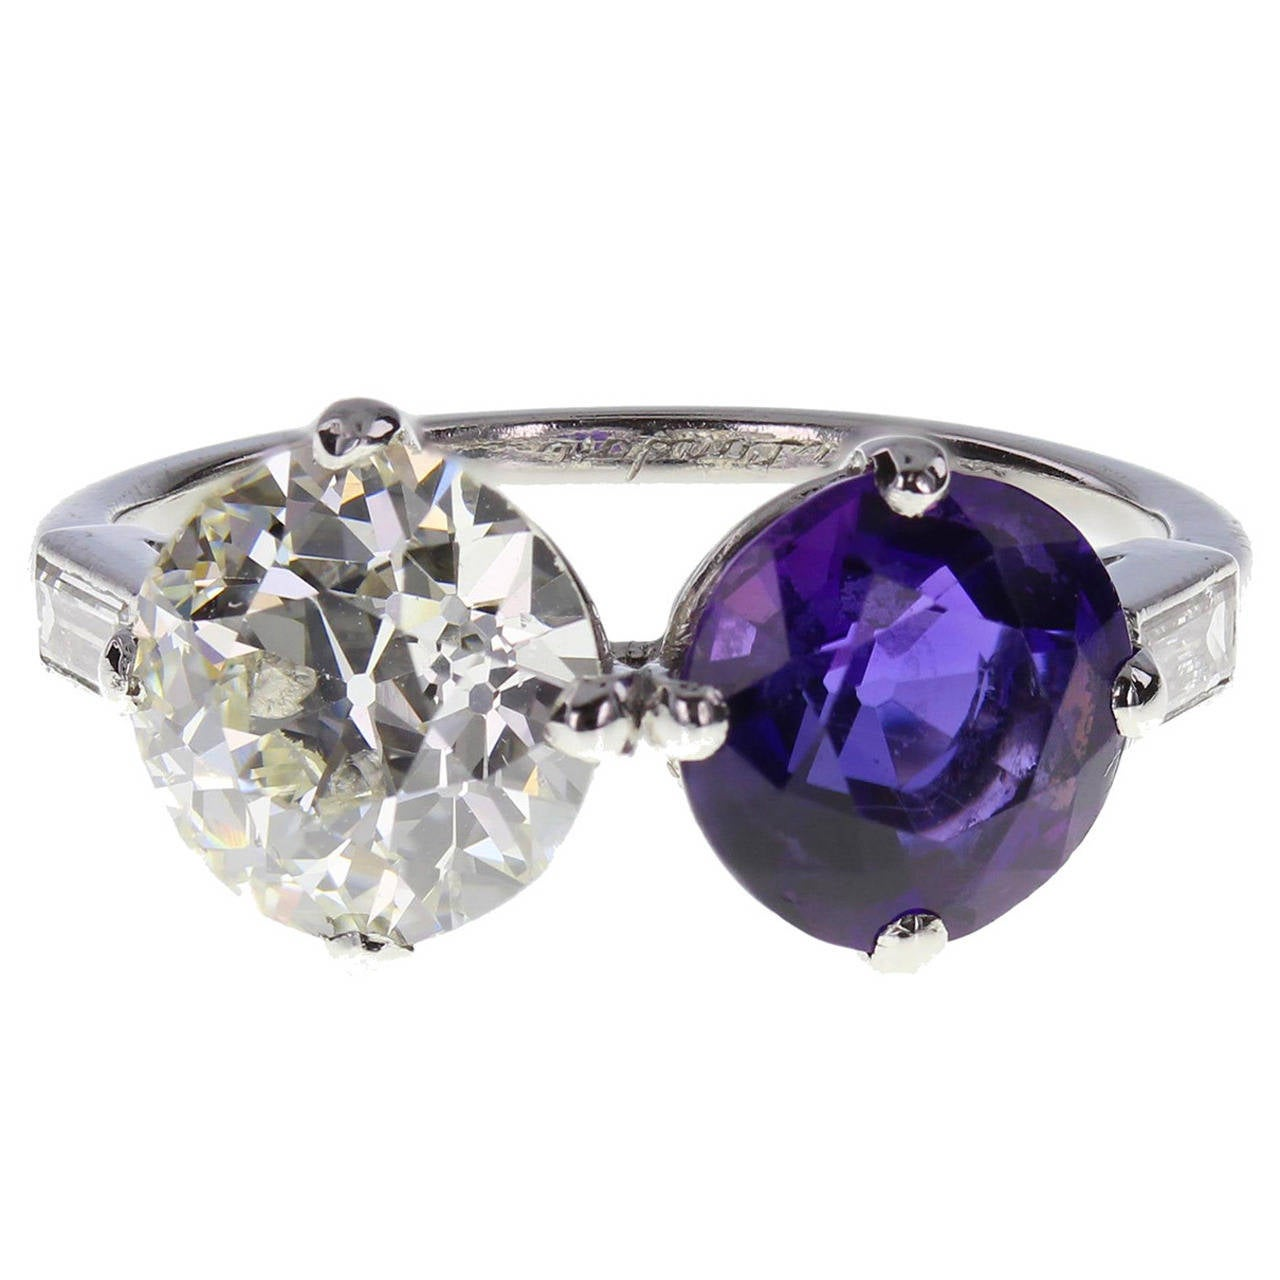 1920s cartier amethyst platinum two ring